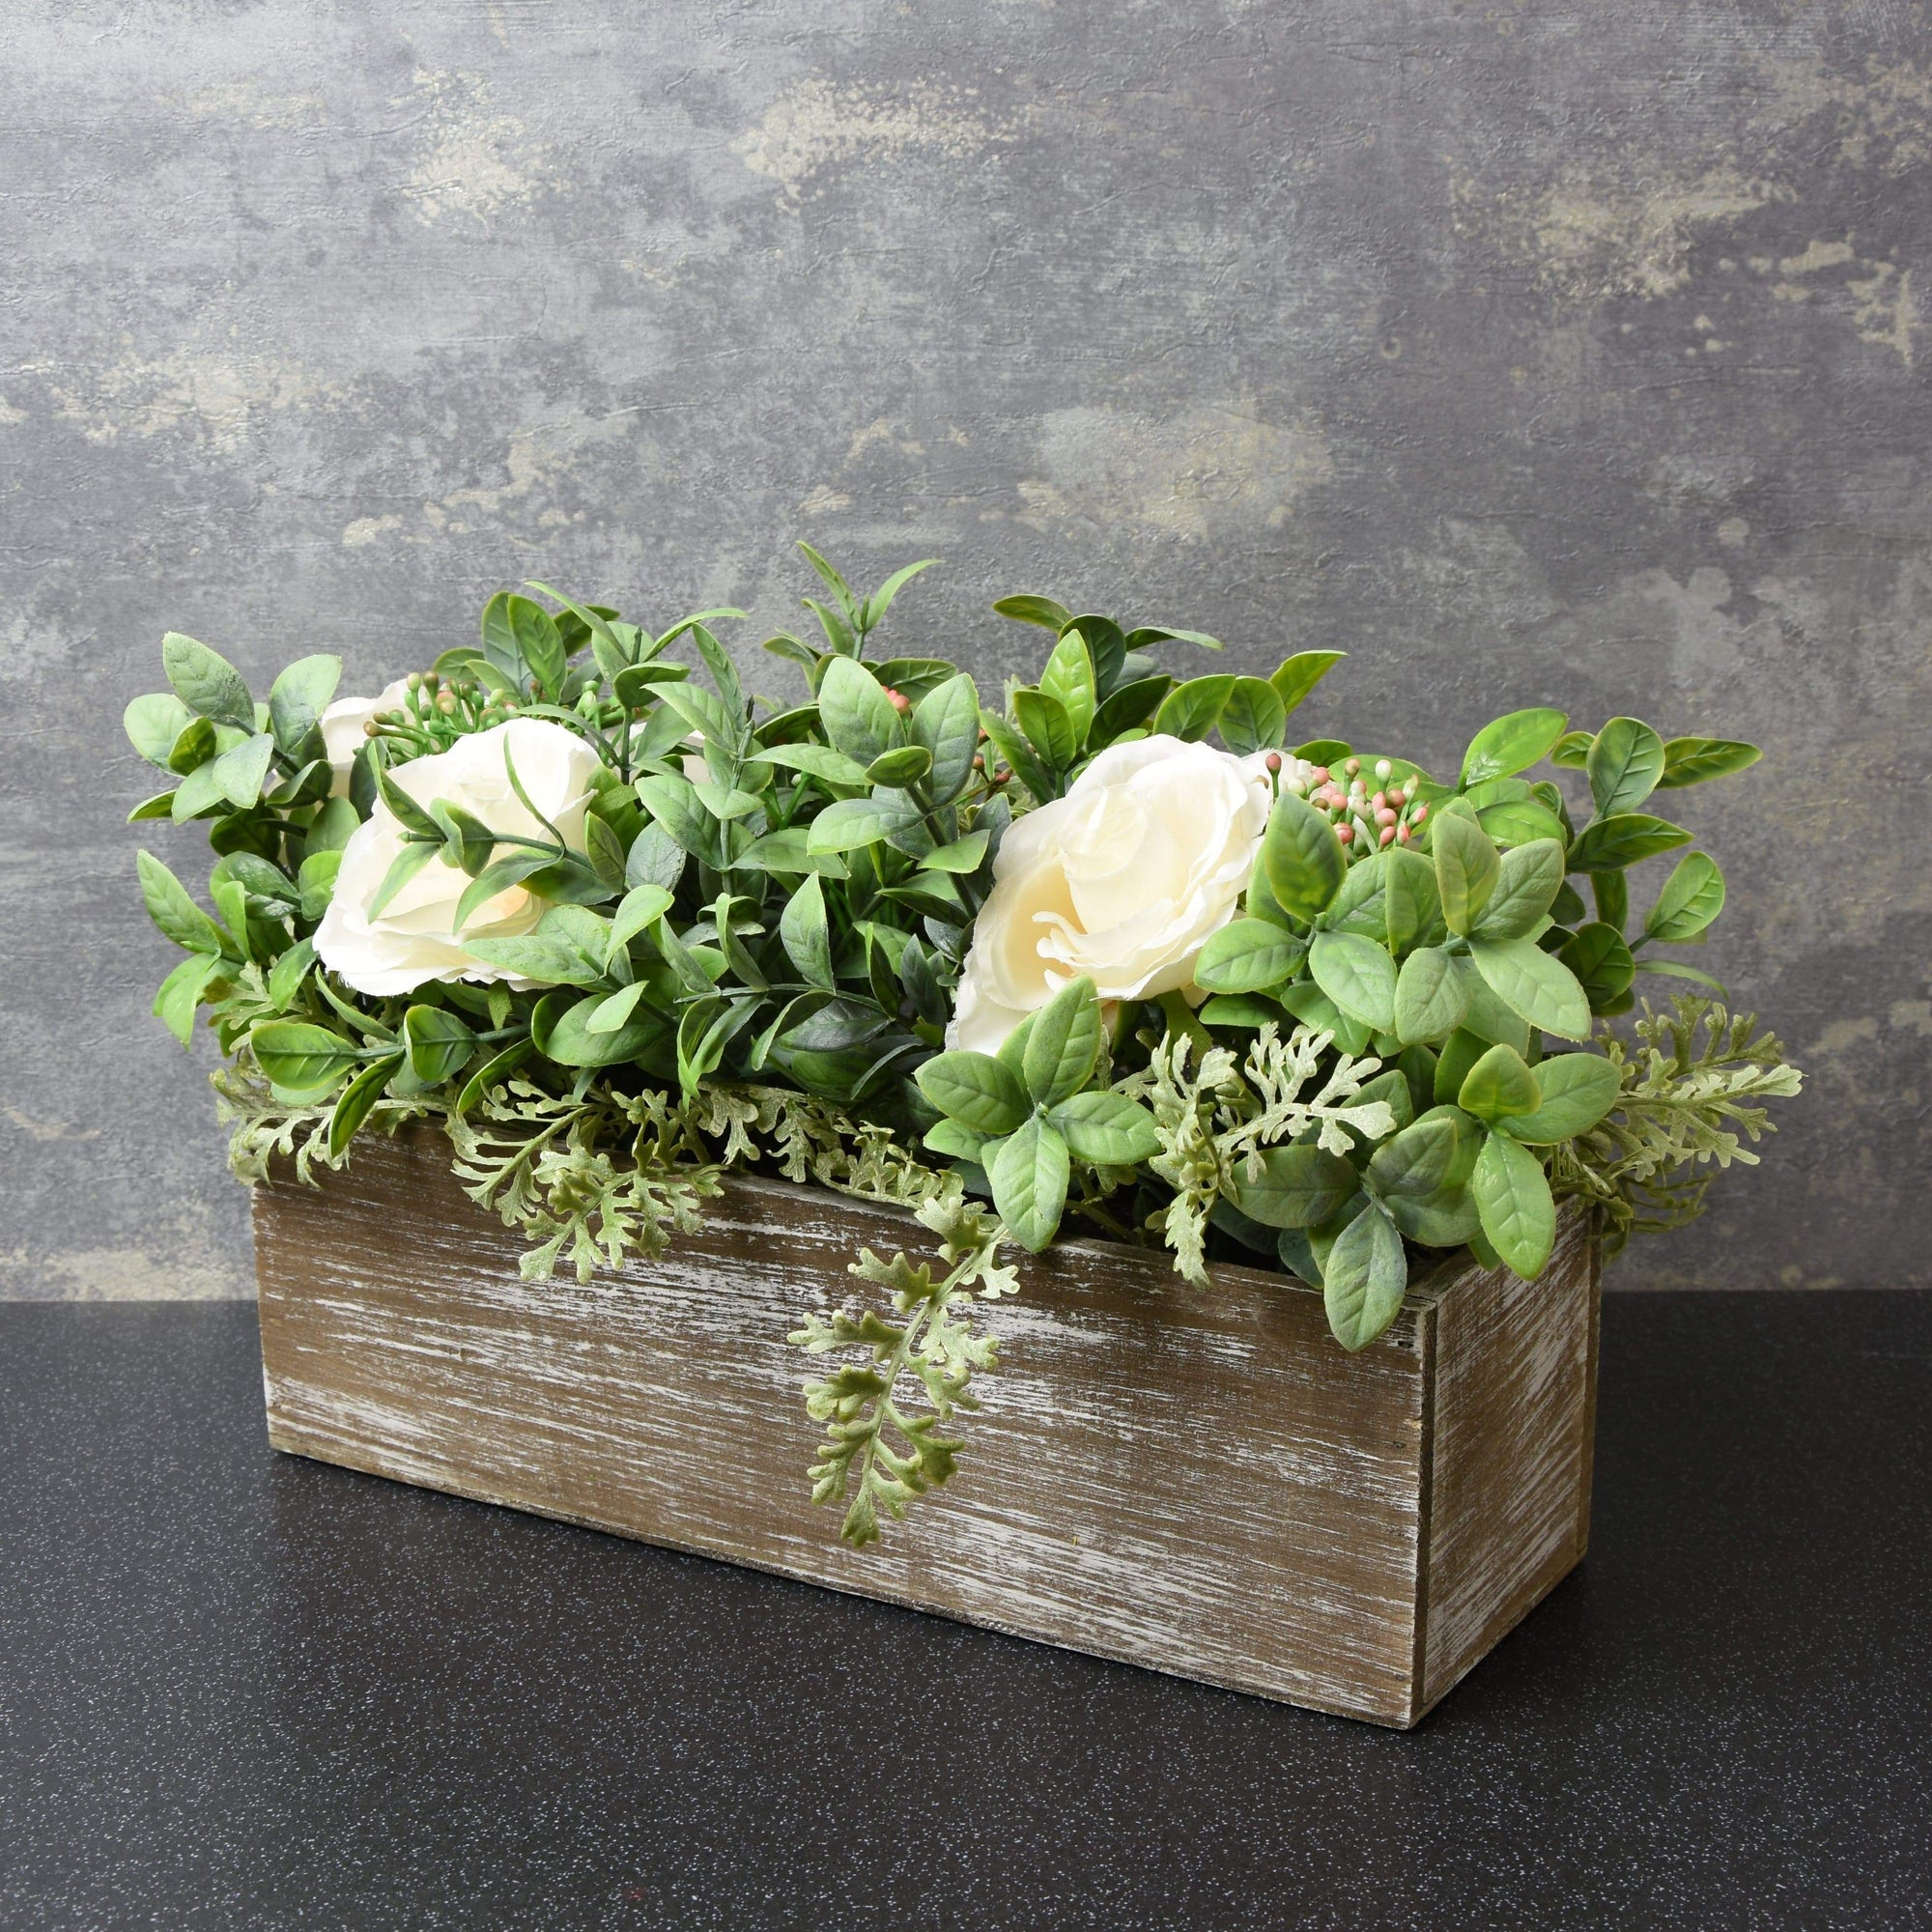 Artificial Roses and Leaves in Wooden Box White 25cm 4PK